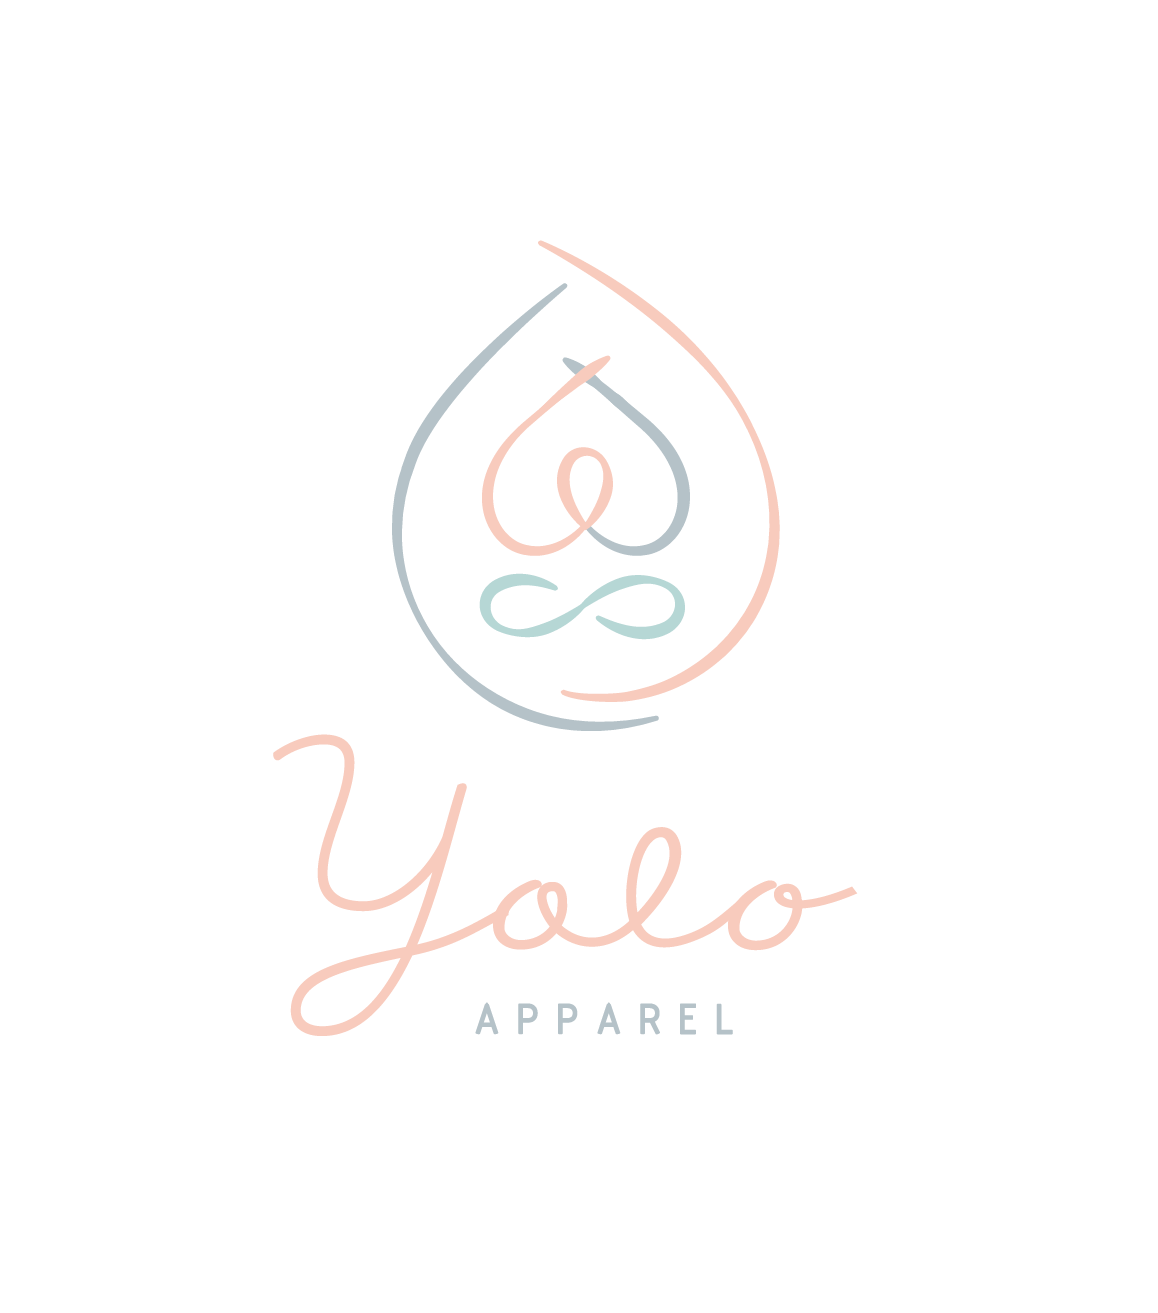 YOLO Apparel